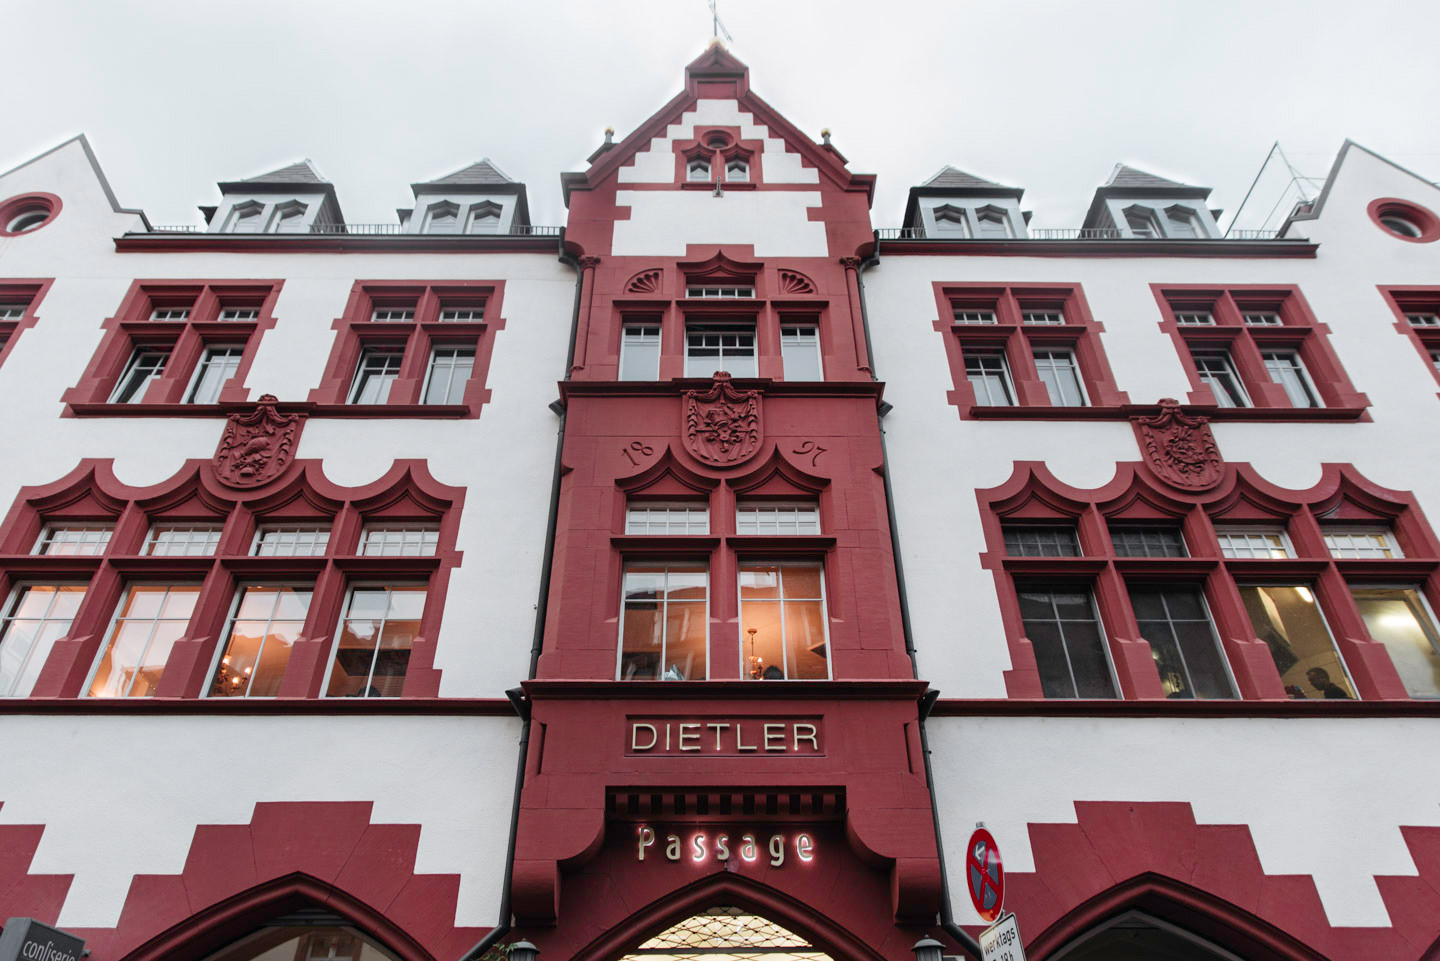 Blog-Mode-And-The-City-Lifestyle-Roadtrip-Allemagne-Autriche02